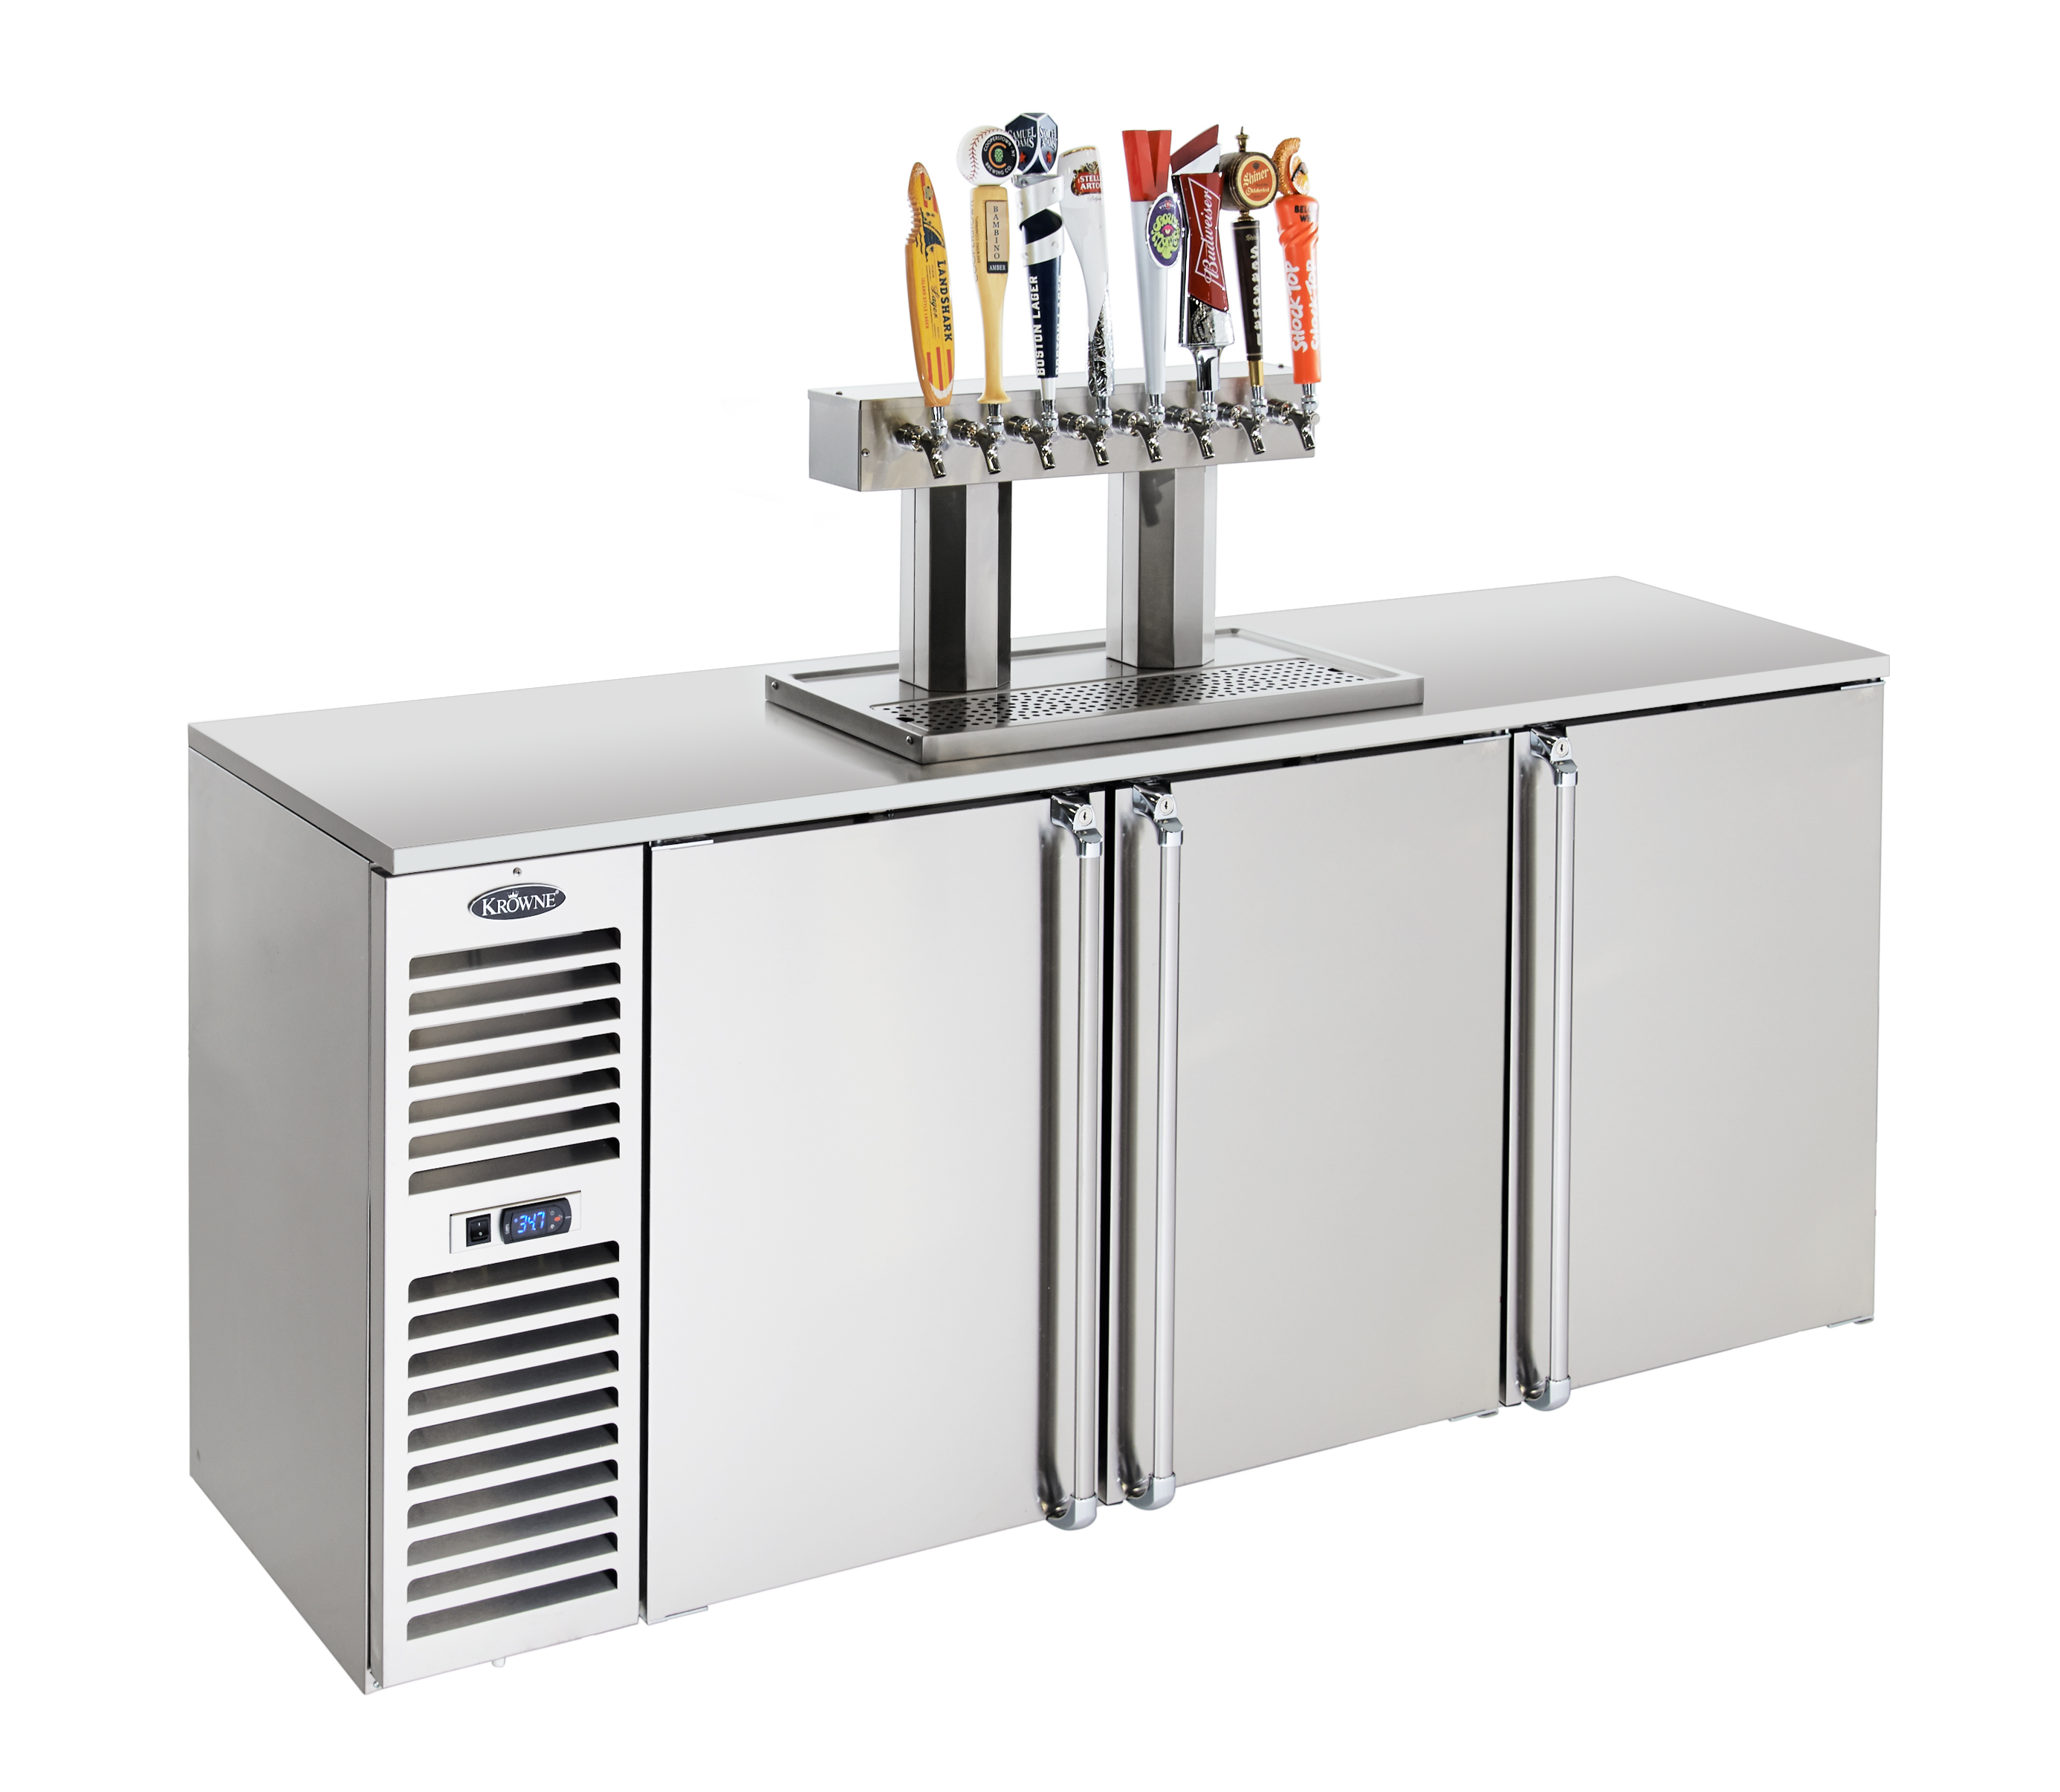 Krowne Metal DB72 draft beer cooler